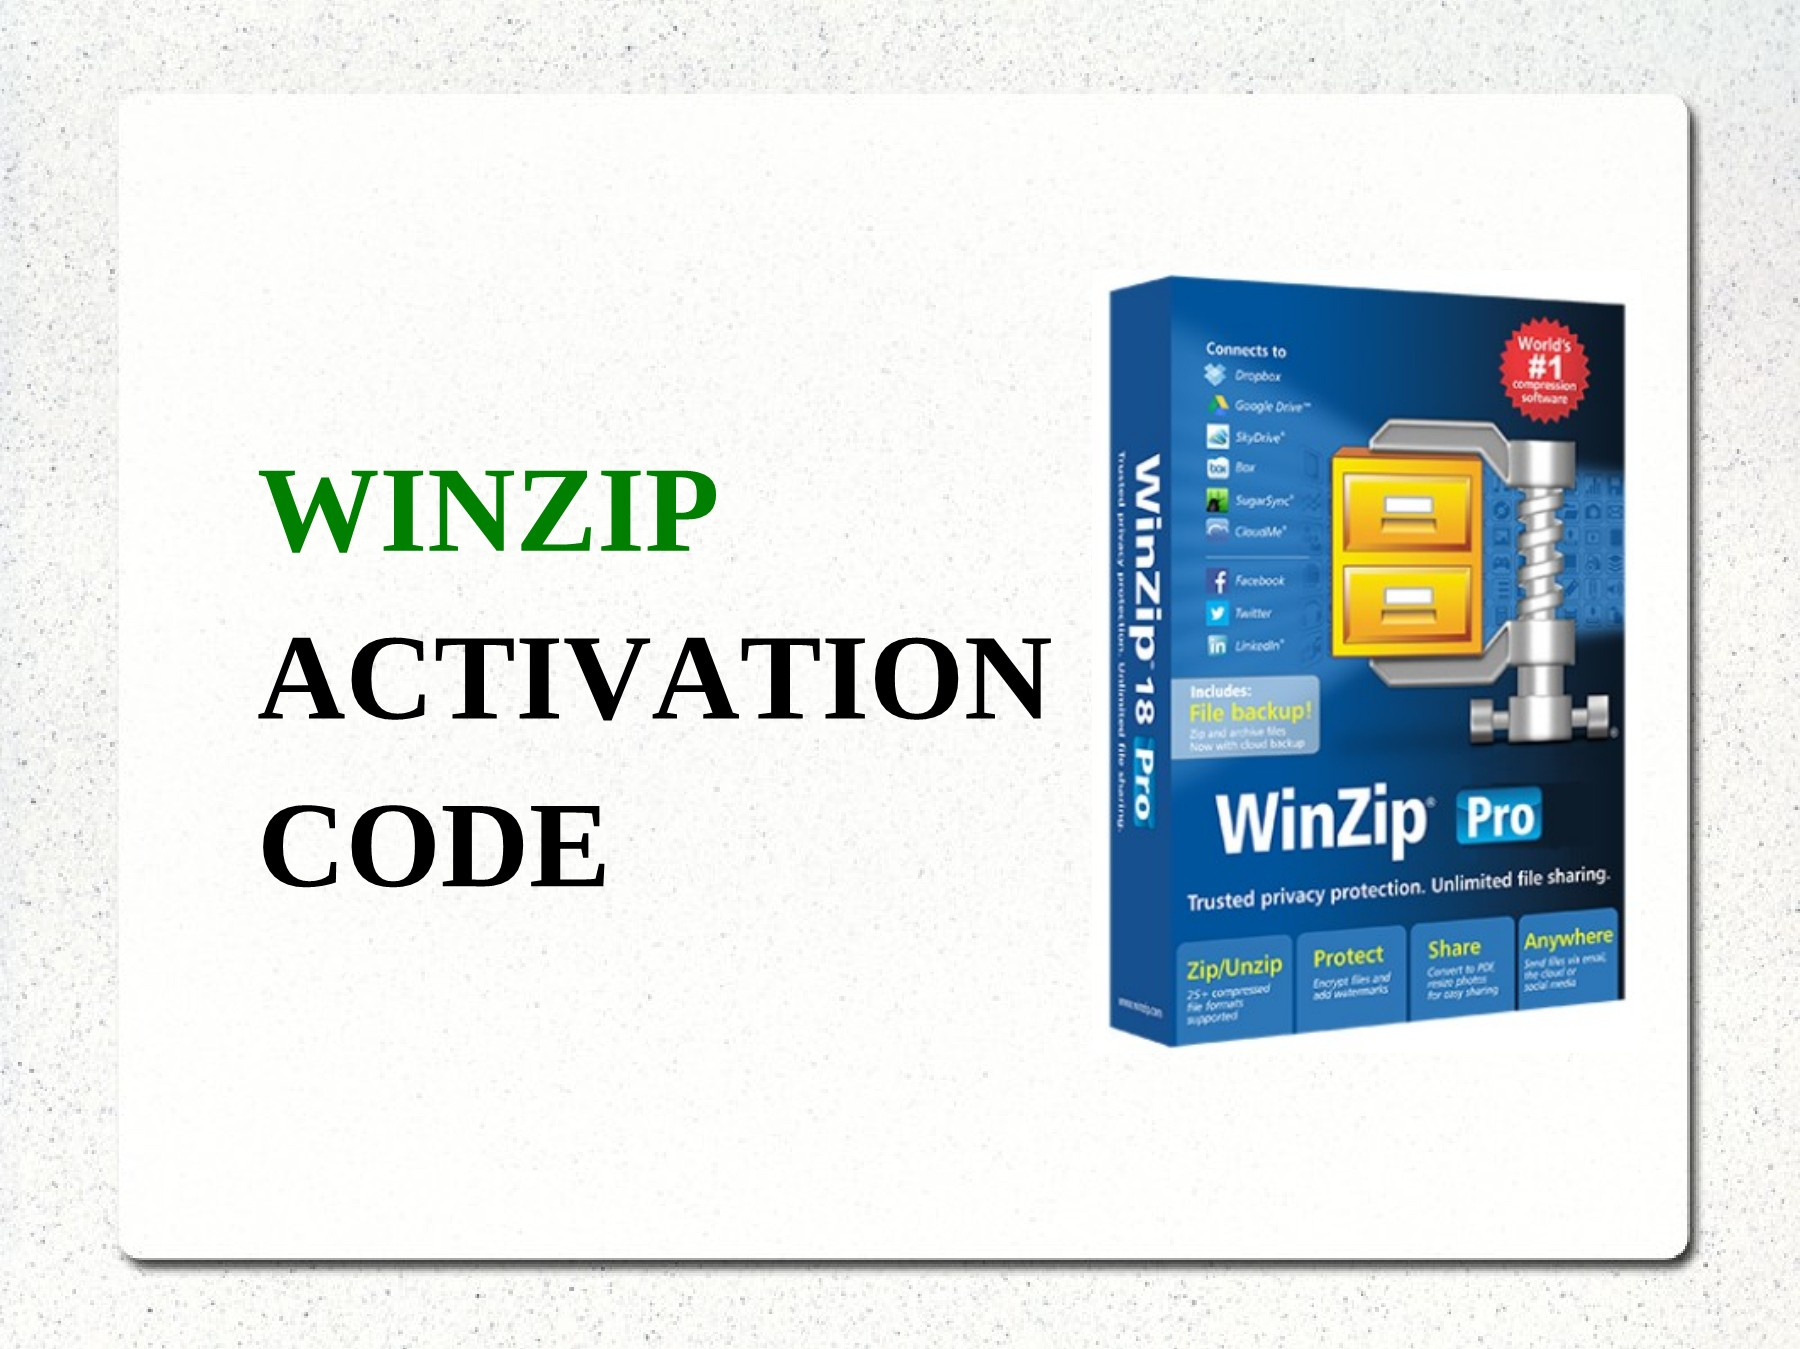 winzip activation codes free